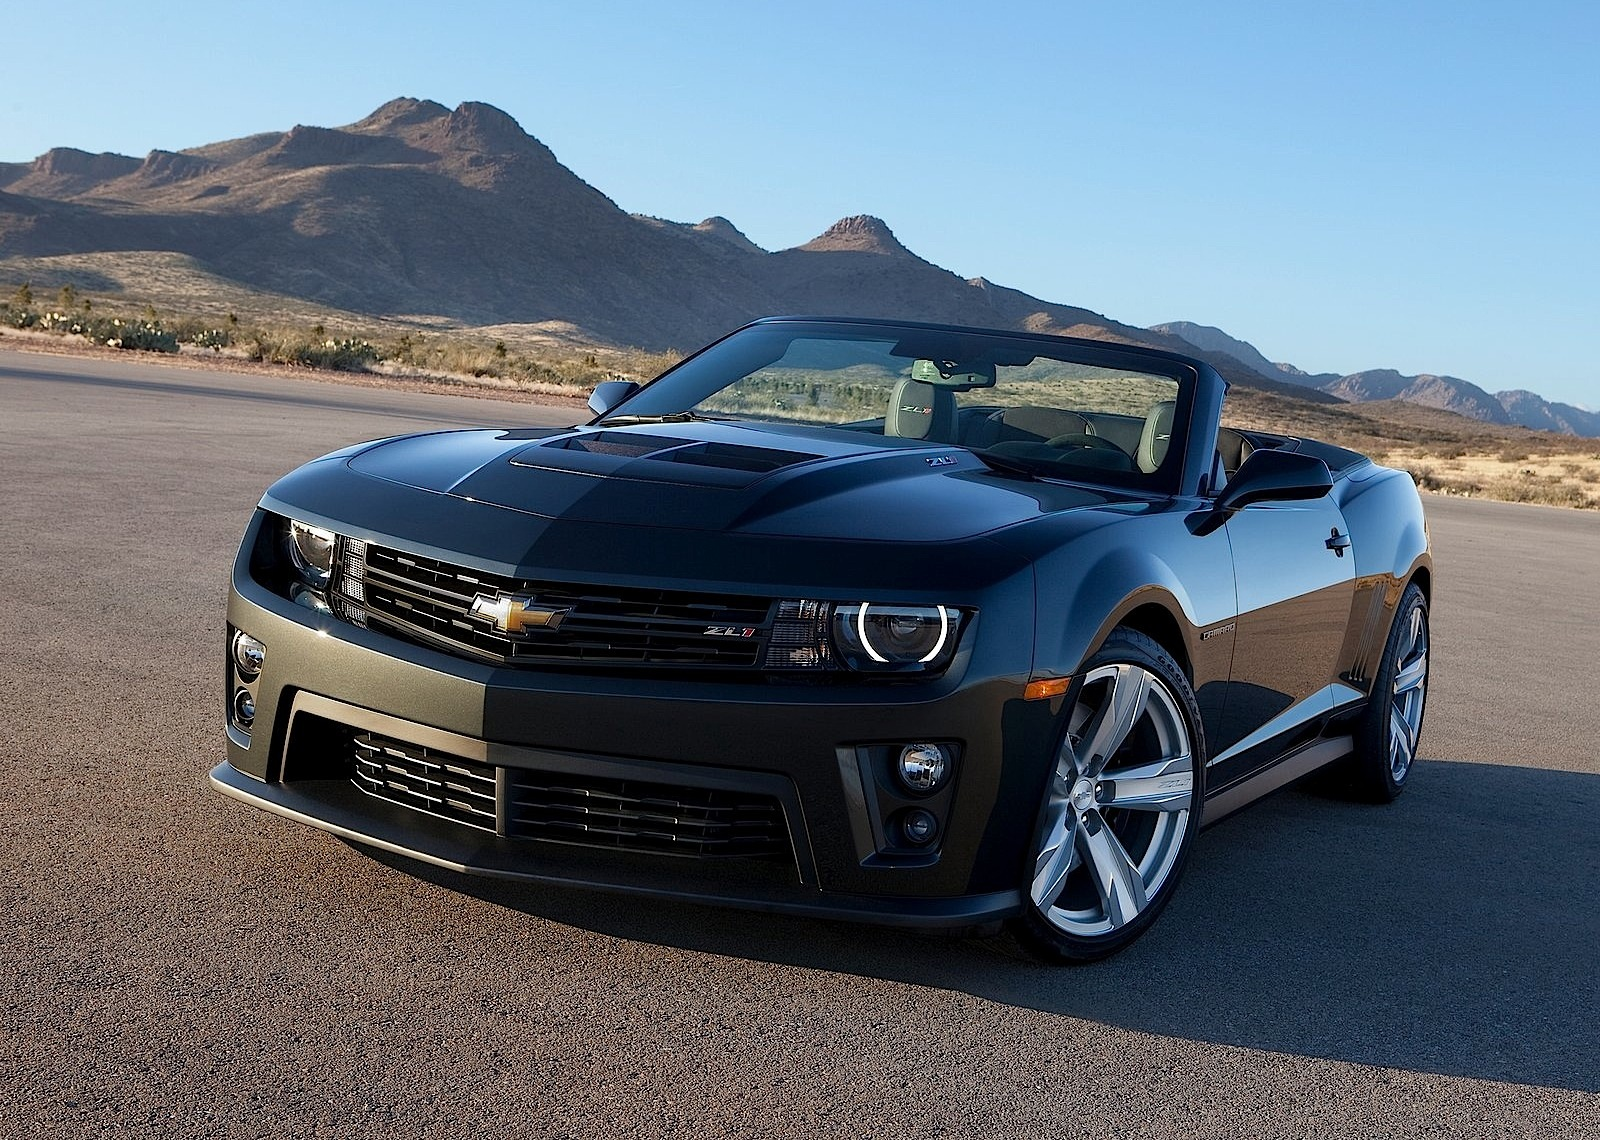 chevrolet camaro zl1 convertible specs & photos - 2012, 2013, 2014